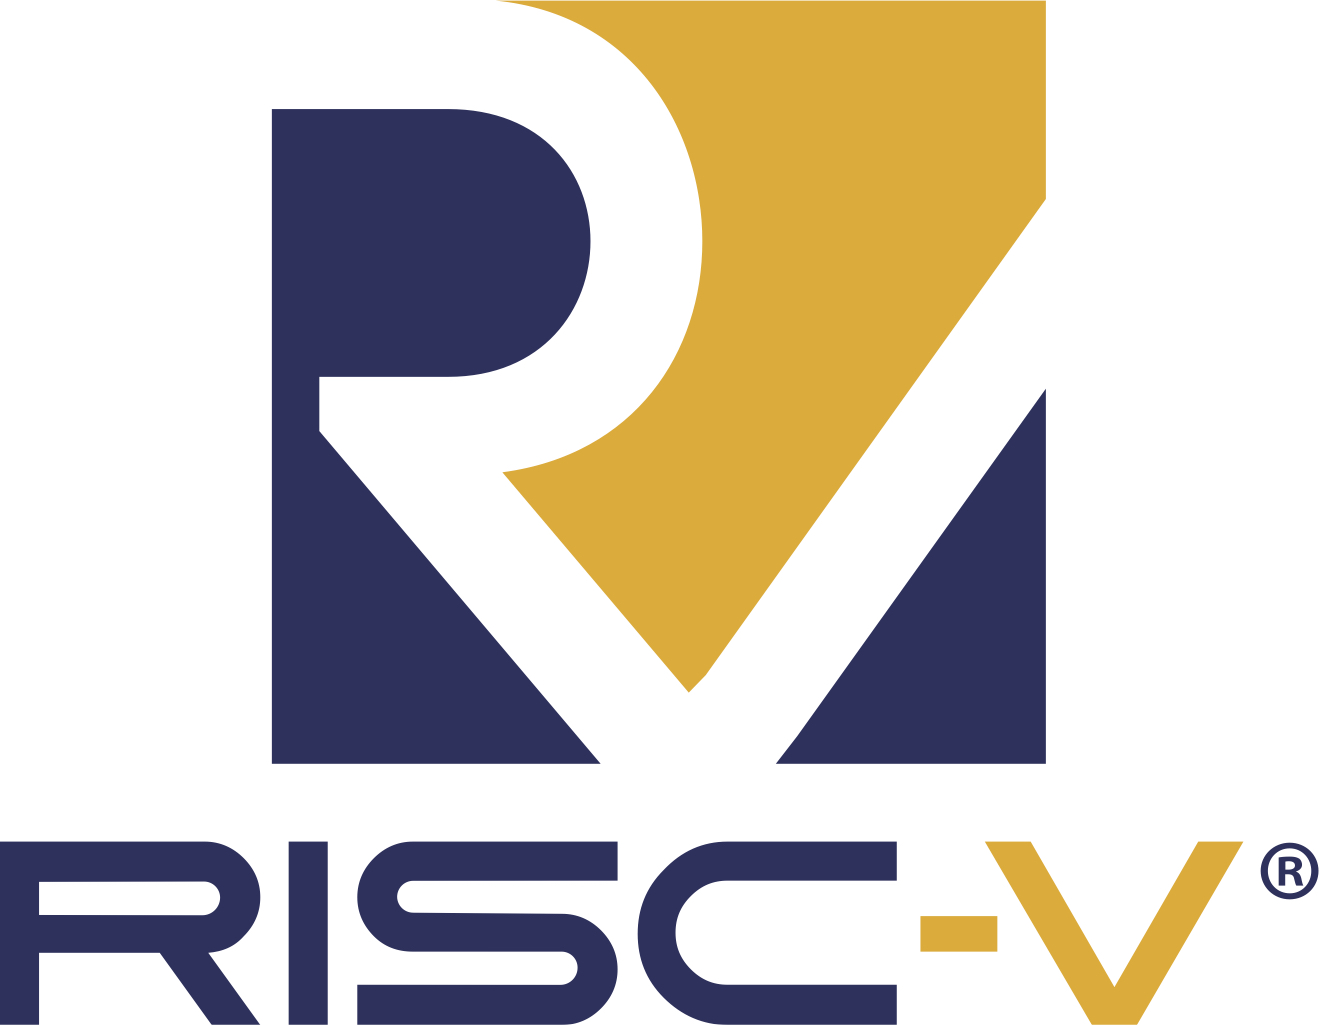 The RISC-V Foundation